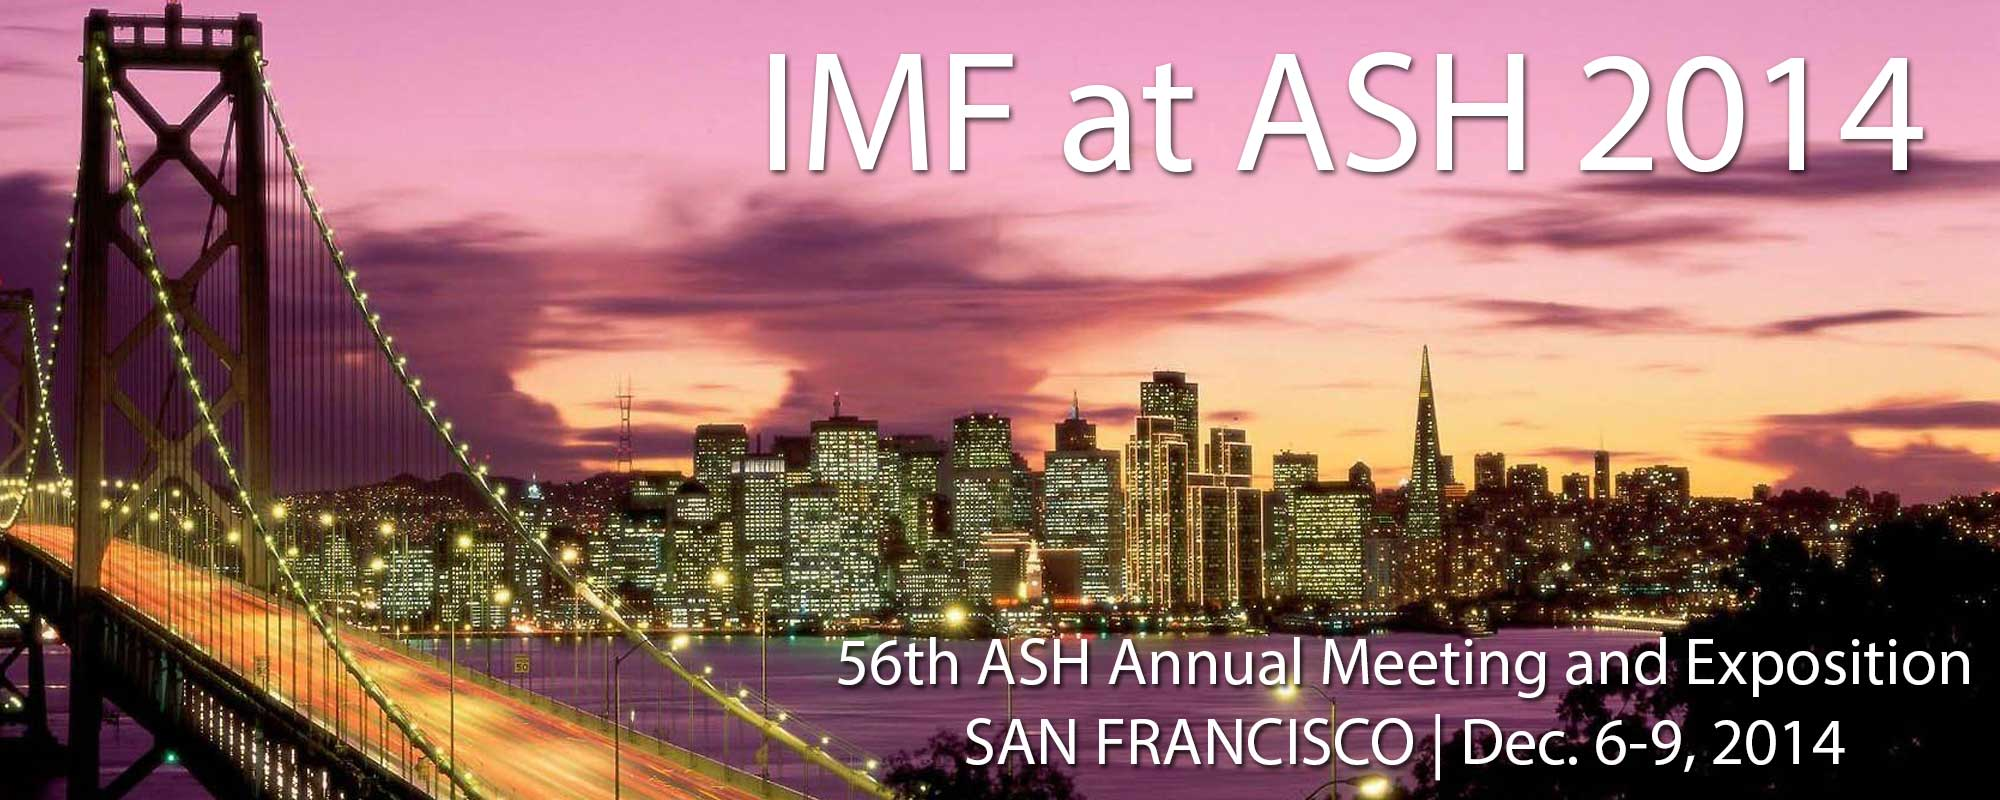 The 2014 American society of Hematology (ASH) meeting in taking place in  San Francisco